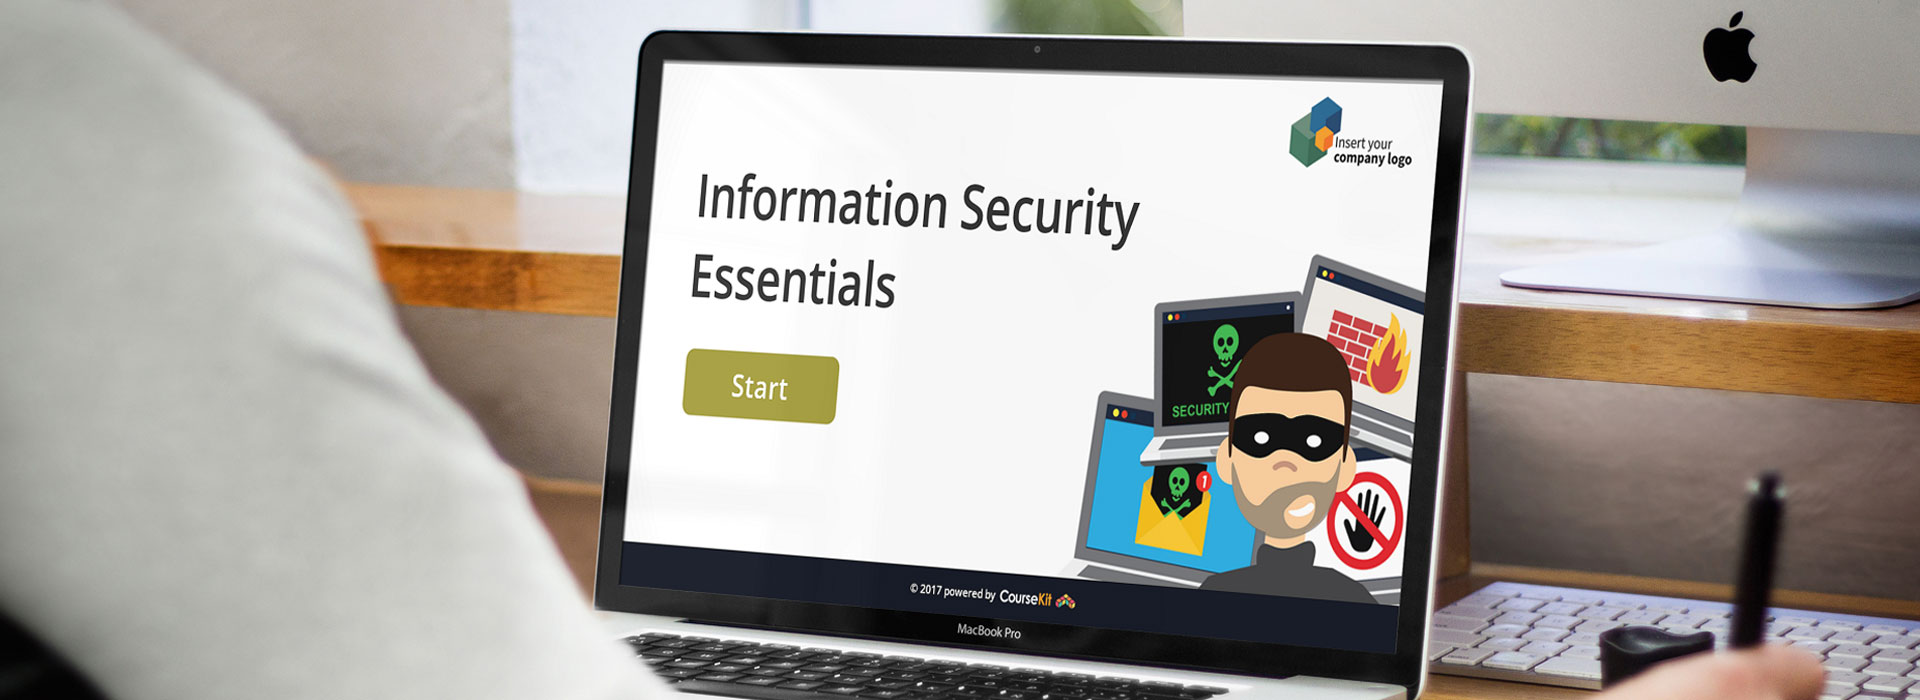 information-security website banner